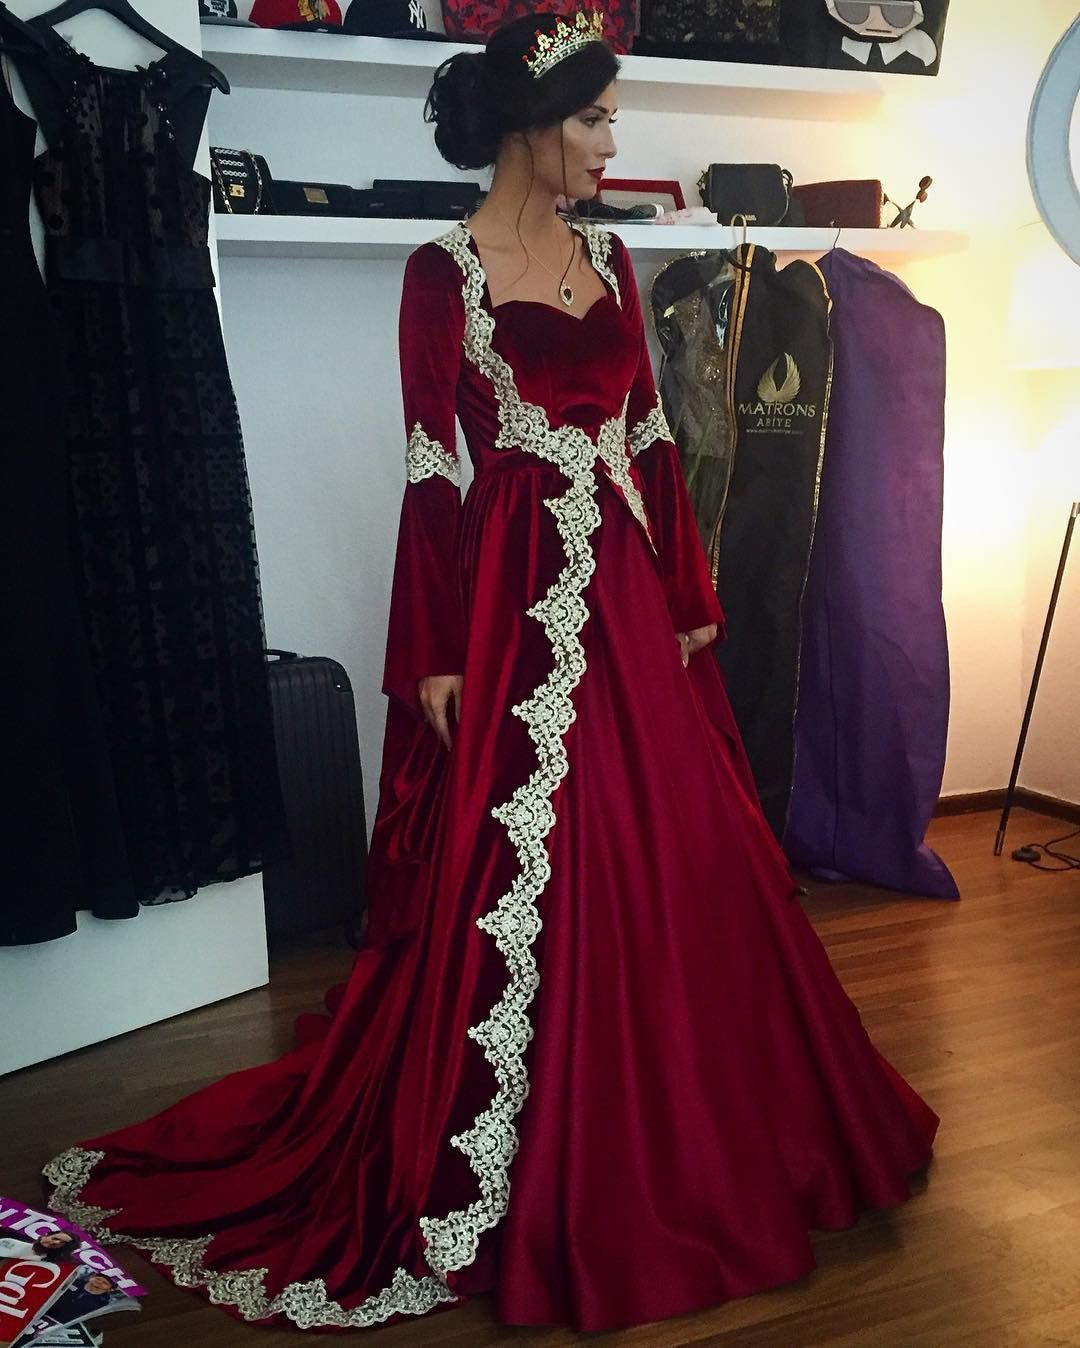 Saudi Arabia Long Sleeves Evening Dresses 2019 Dubai Kaftan Lace Elegant Party Lace Zipper Vintage Moroccan Muslim Formal Gowns Weddings & Events